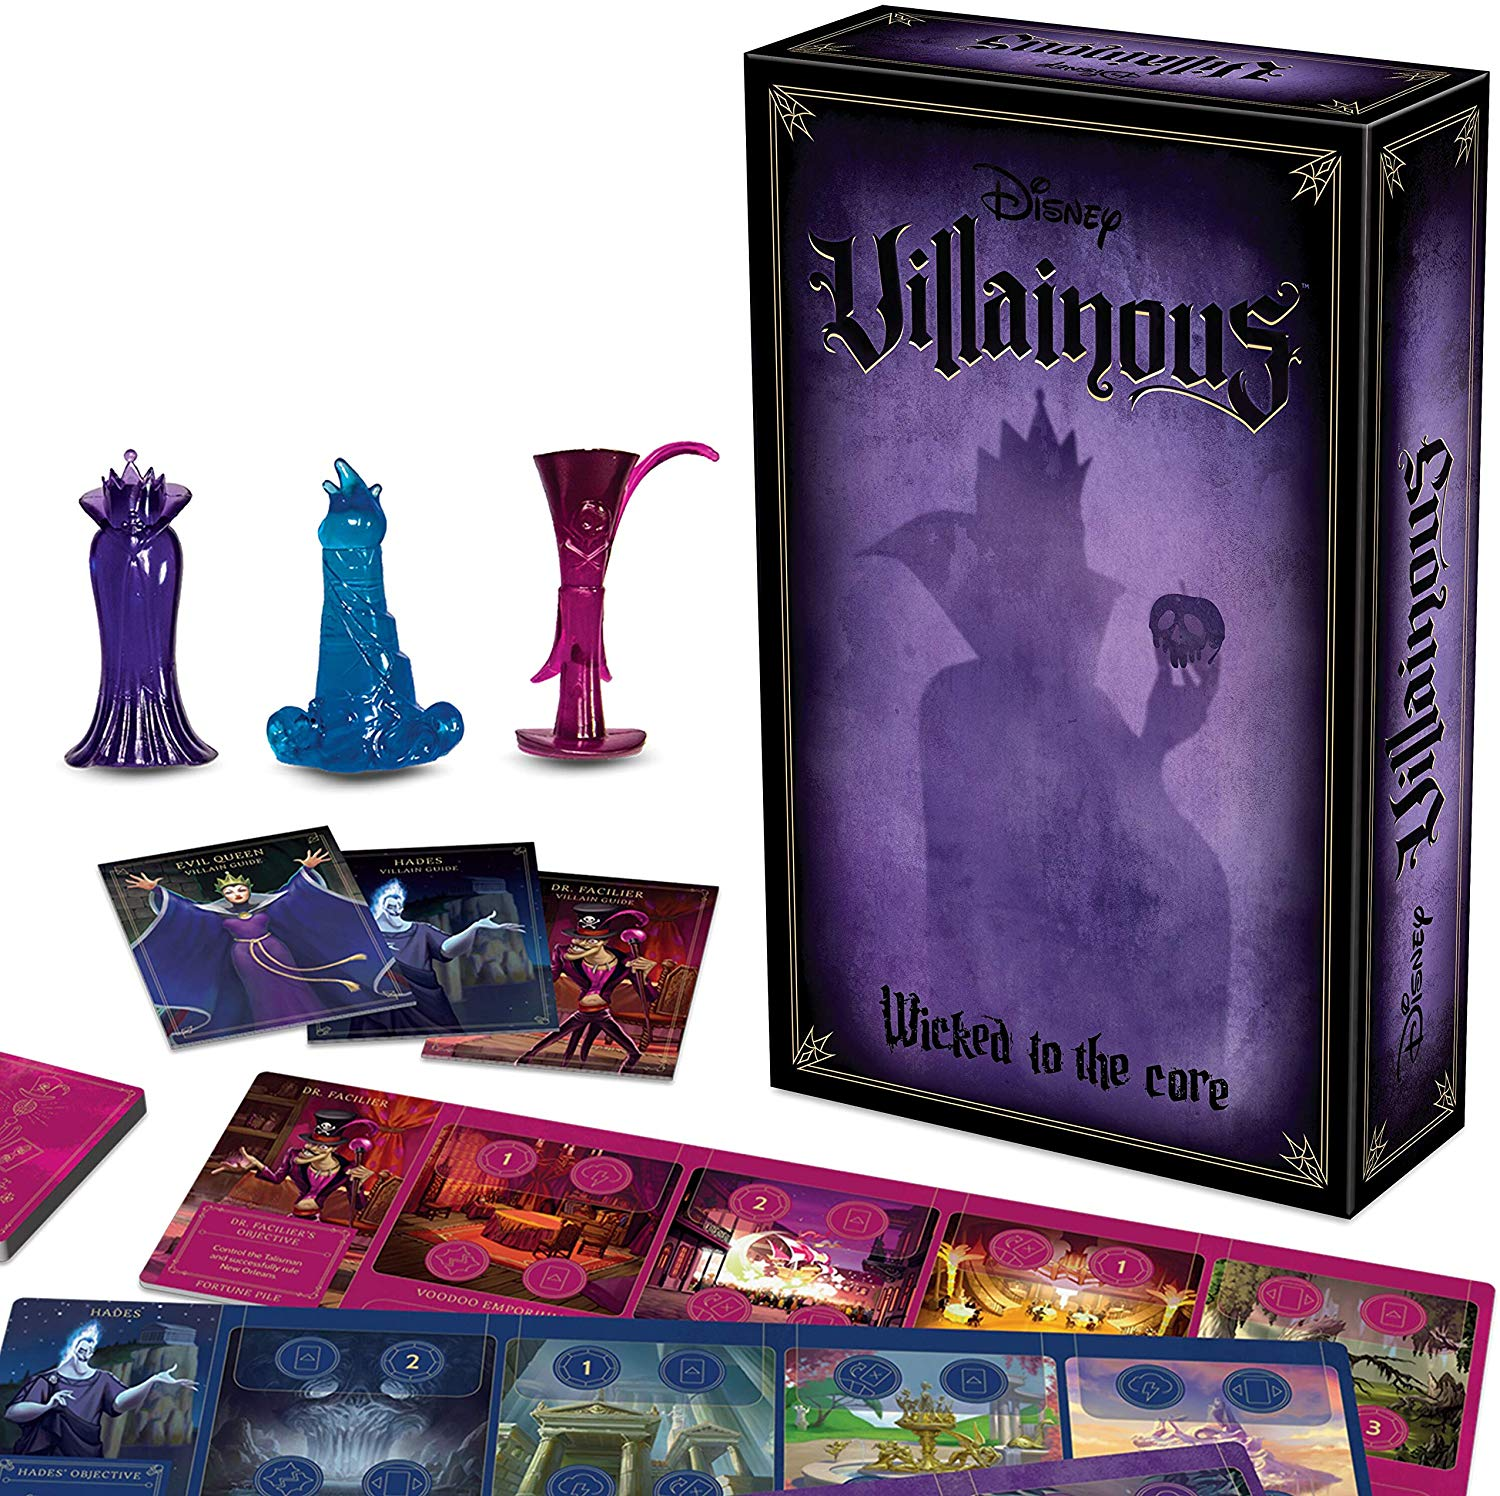 Disney Villianous Wicked To The Core. Take on the role of a Disney villain striving to achieve your devious objective. Discover unique abilities while dealing twists of fate to your opponents! Who will triumph in this contest of sinister power? Great for Disney fans and families - Whether you're playing with a group of devoted Disney fans, classic strategy gamers, or with your family, evil comes prepared is perfect for any game night occasion and makes a great gift for Disney lovers!